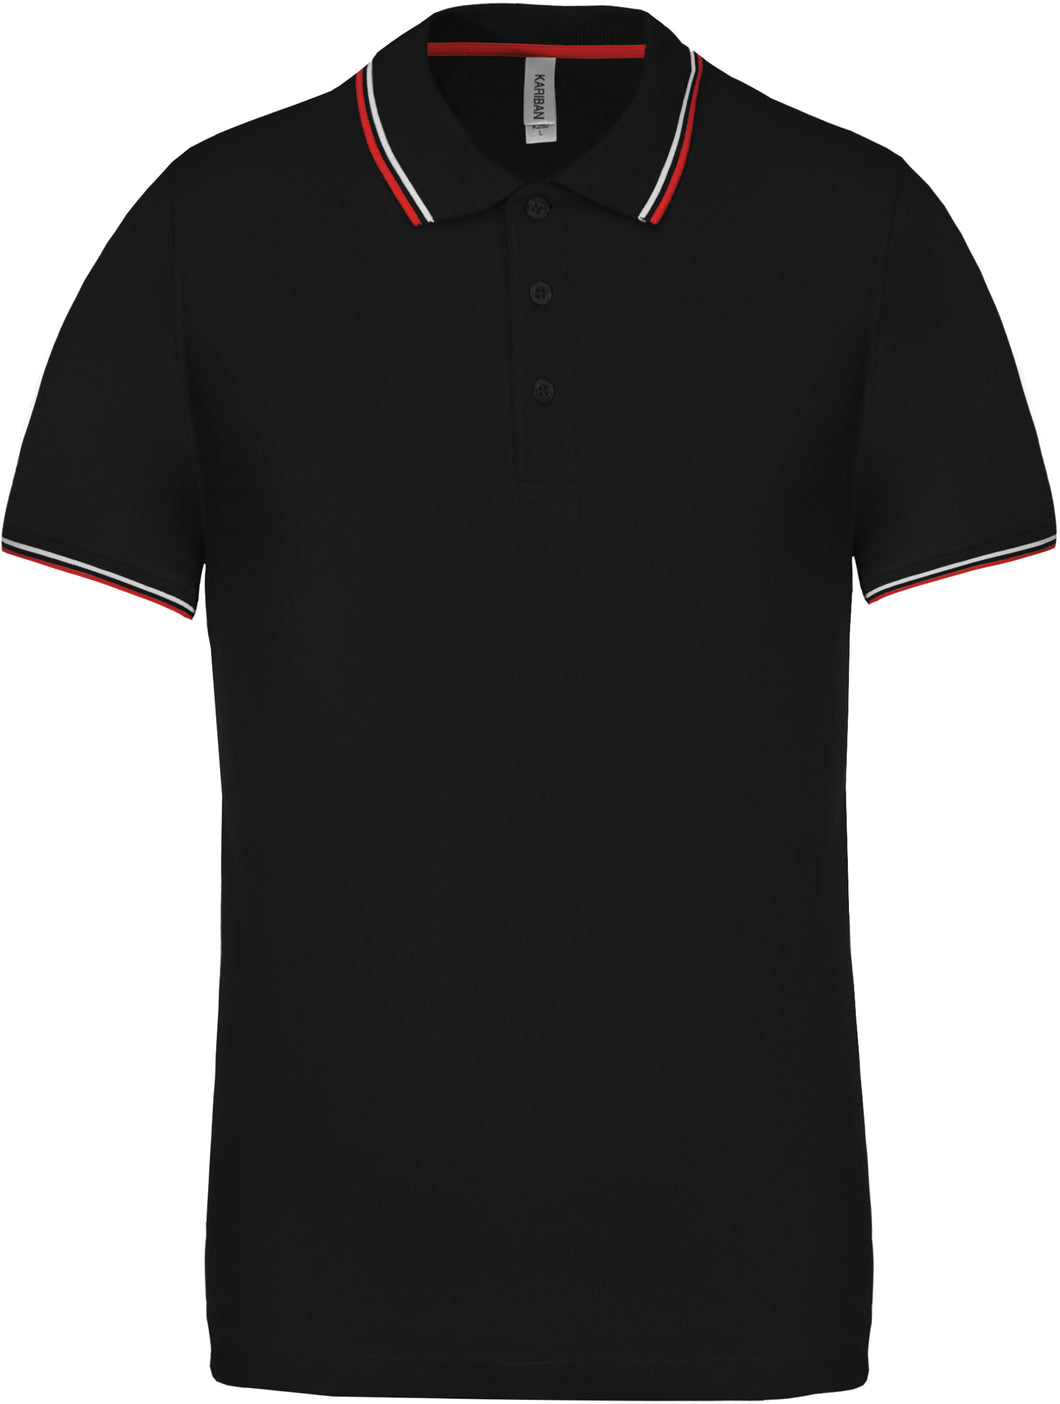 Kariban Short sleeve polo shirt Black